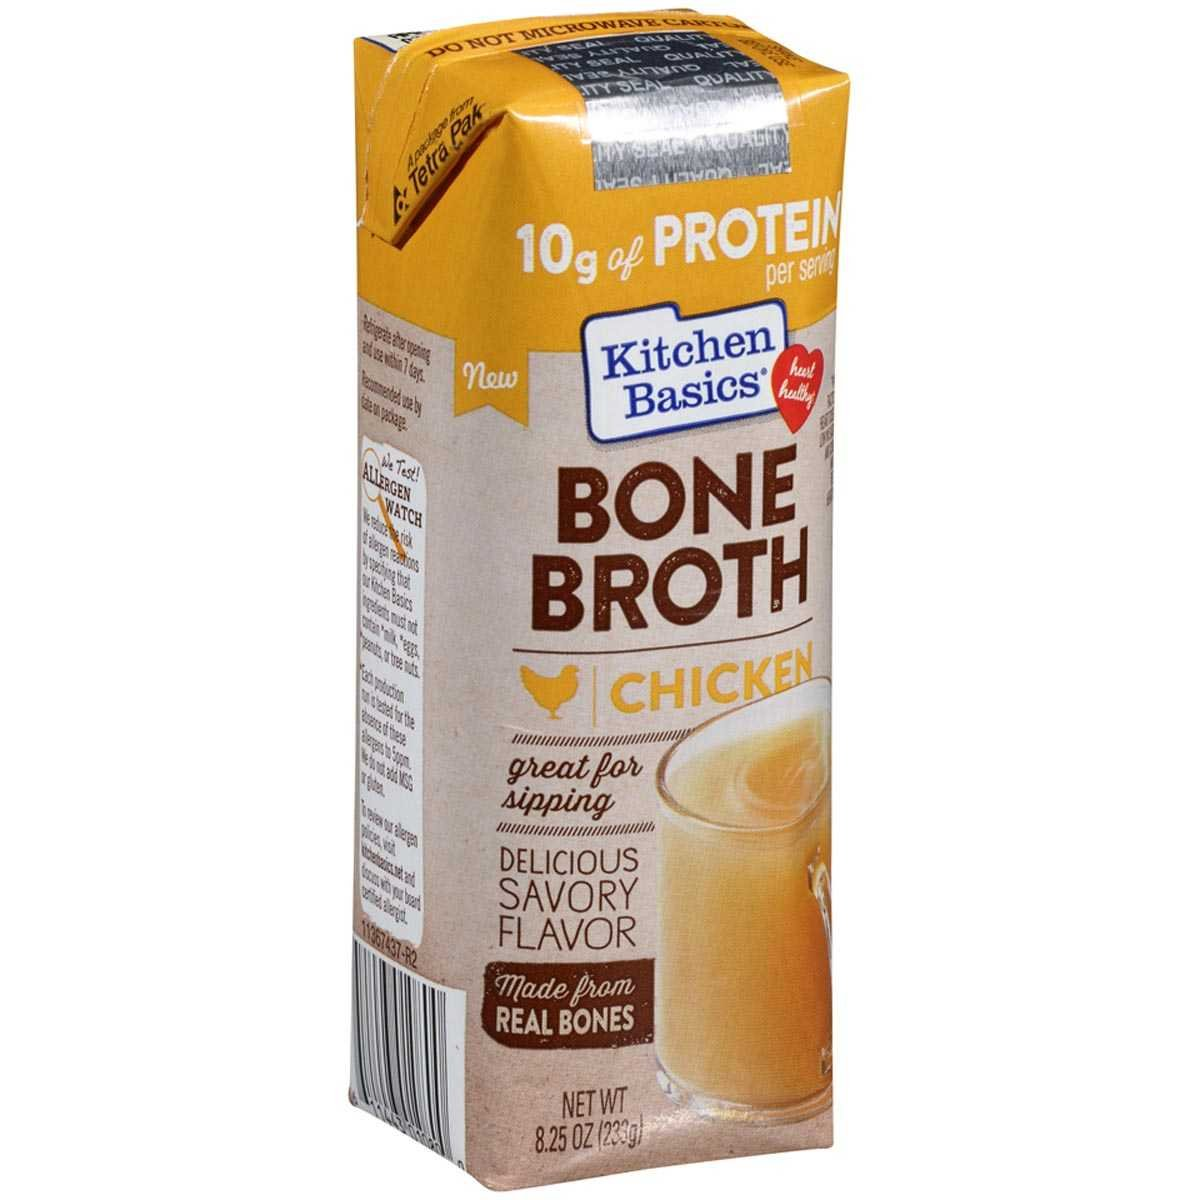 BONE BROTH,CHICKEN - Pack of 12 by KITCHEN BASICS,INC